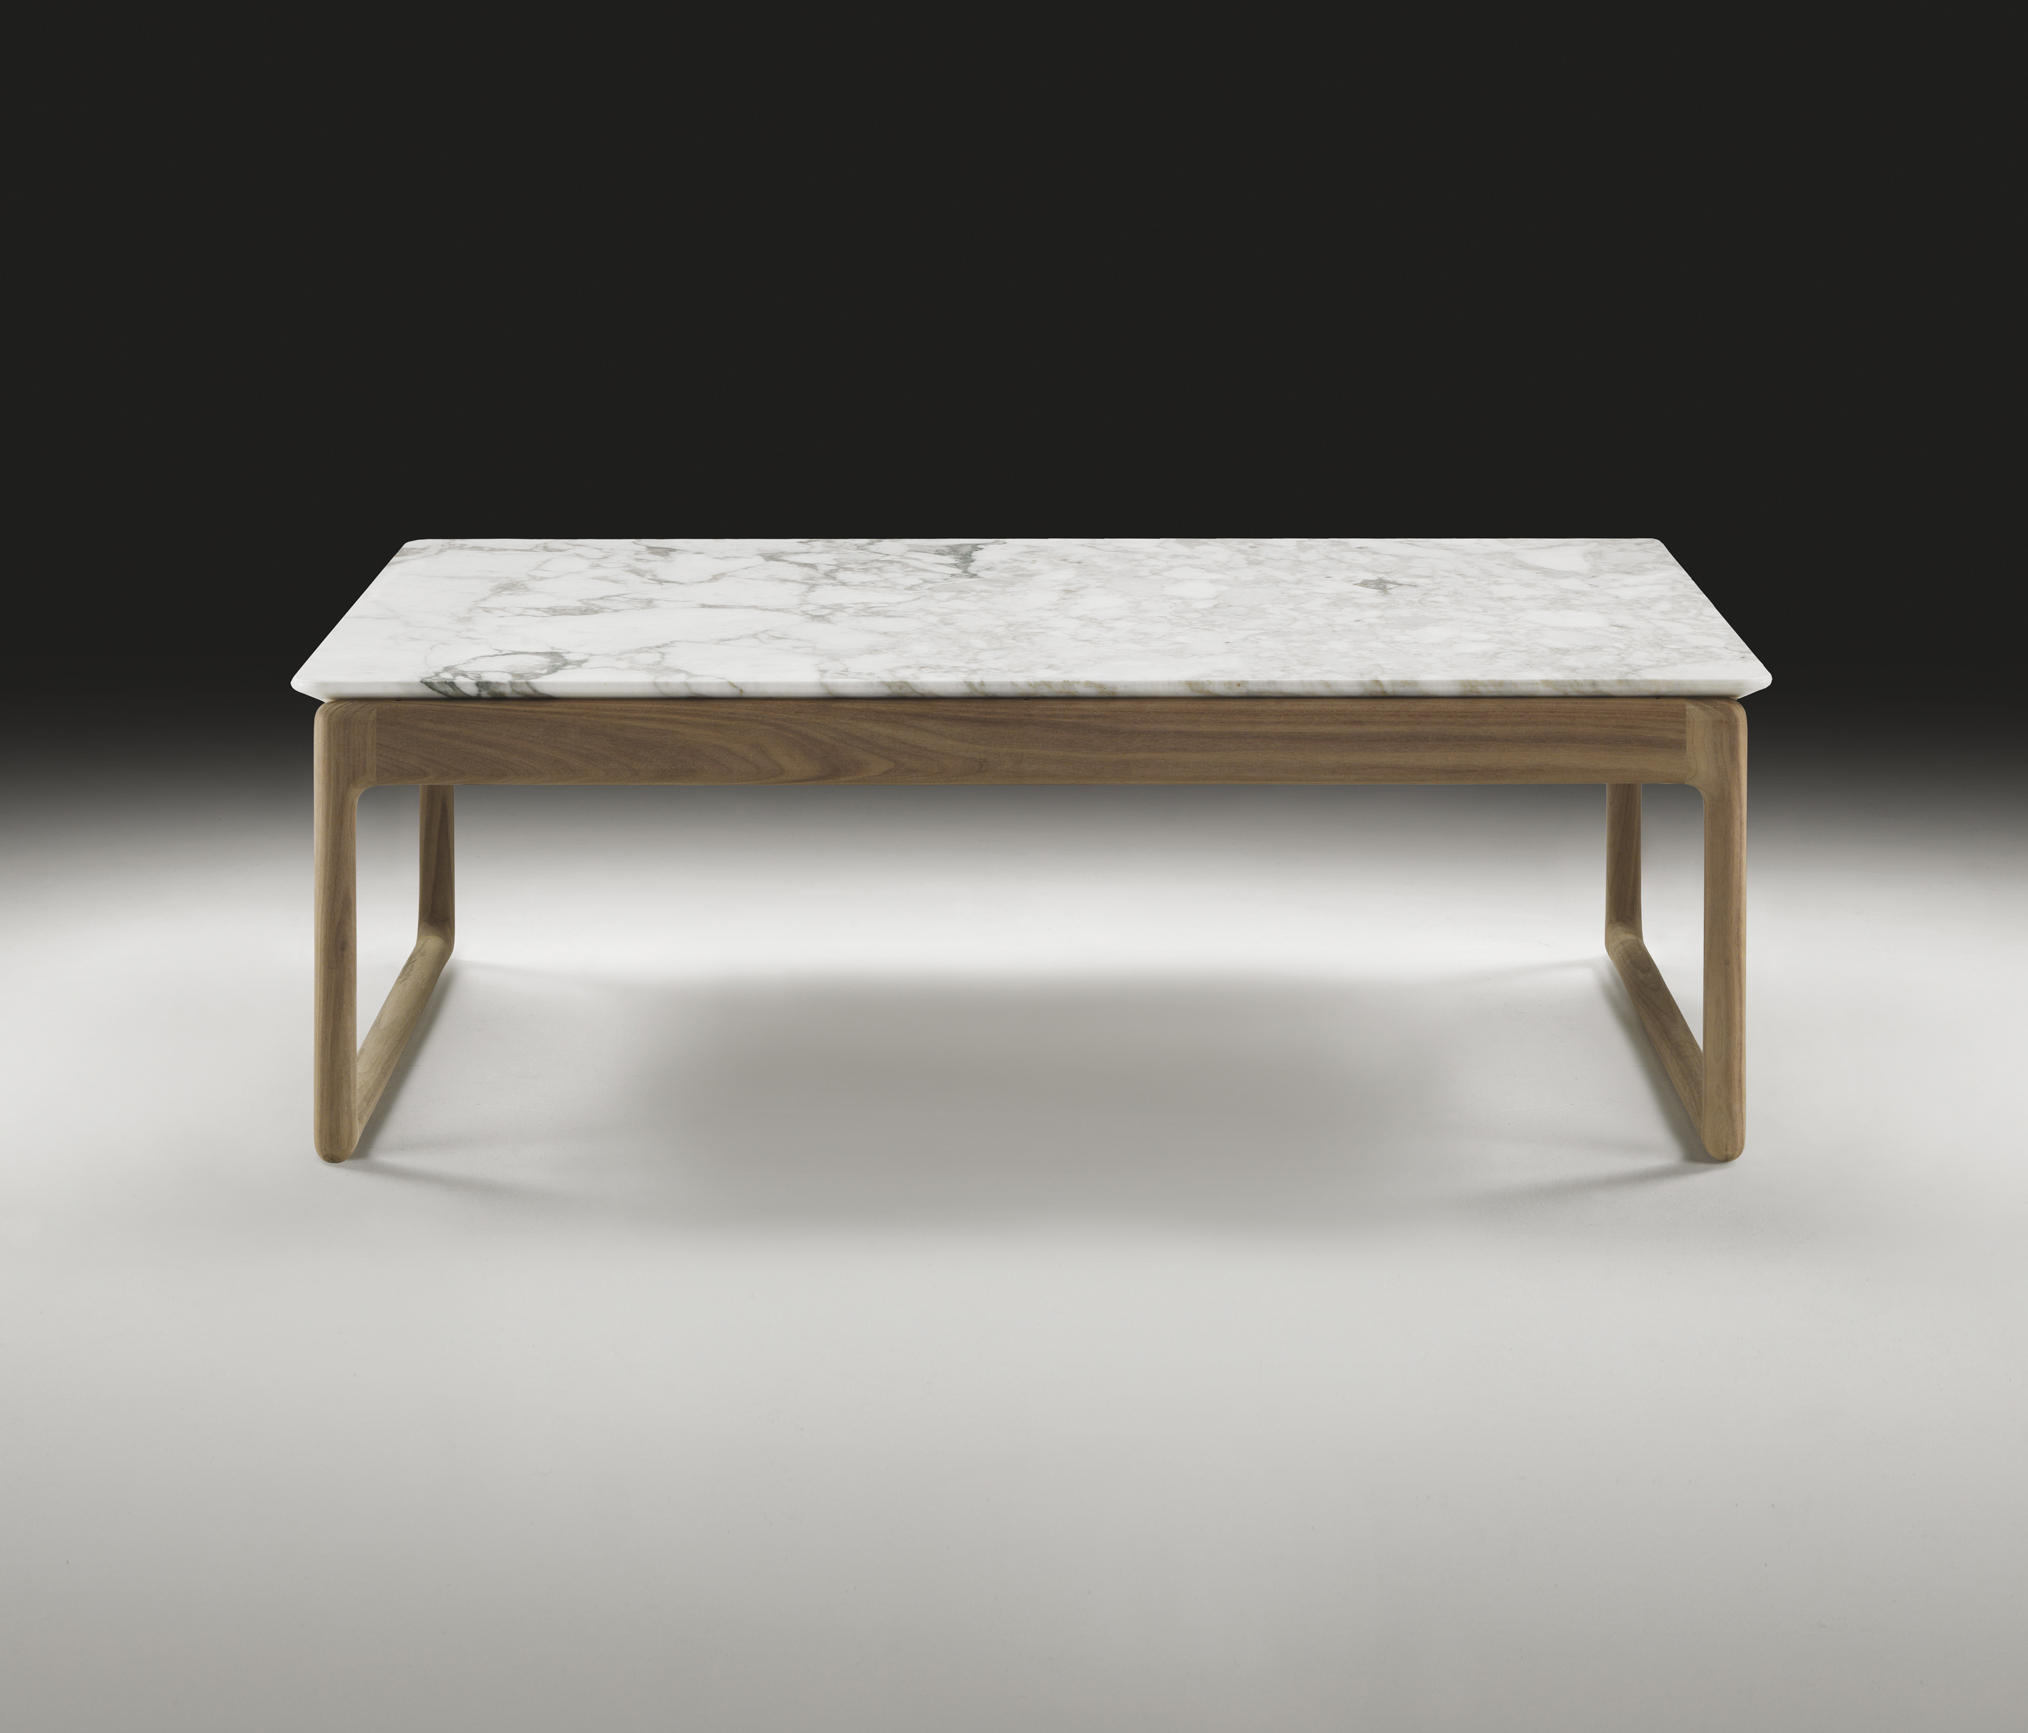 BRIG Lounge tables from Flexform